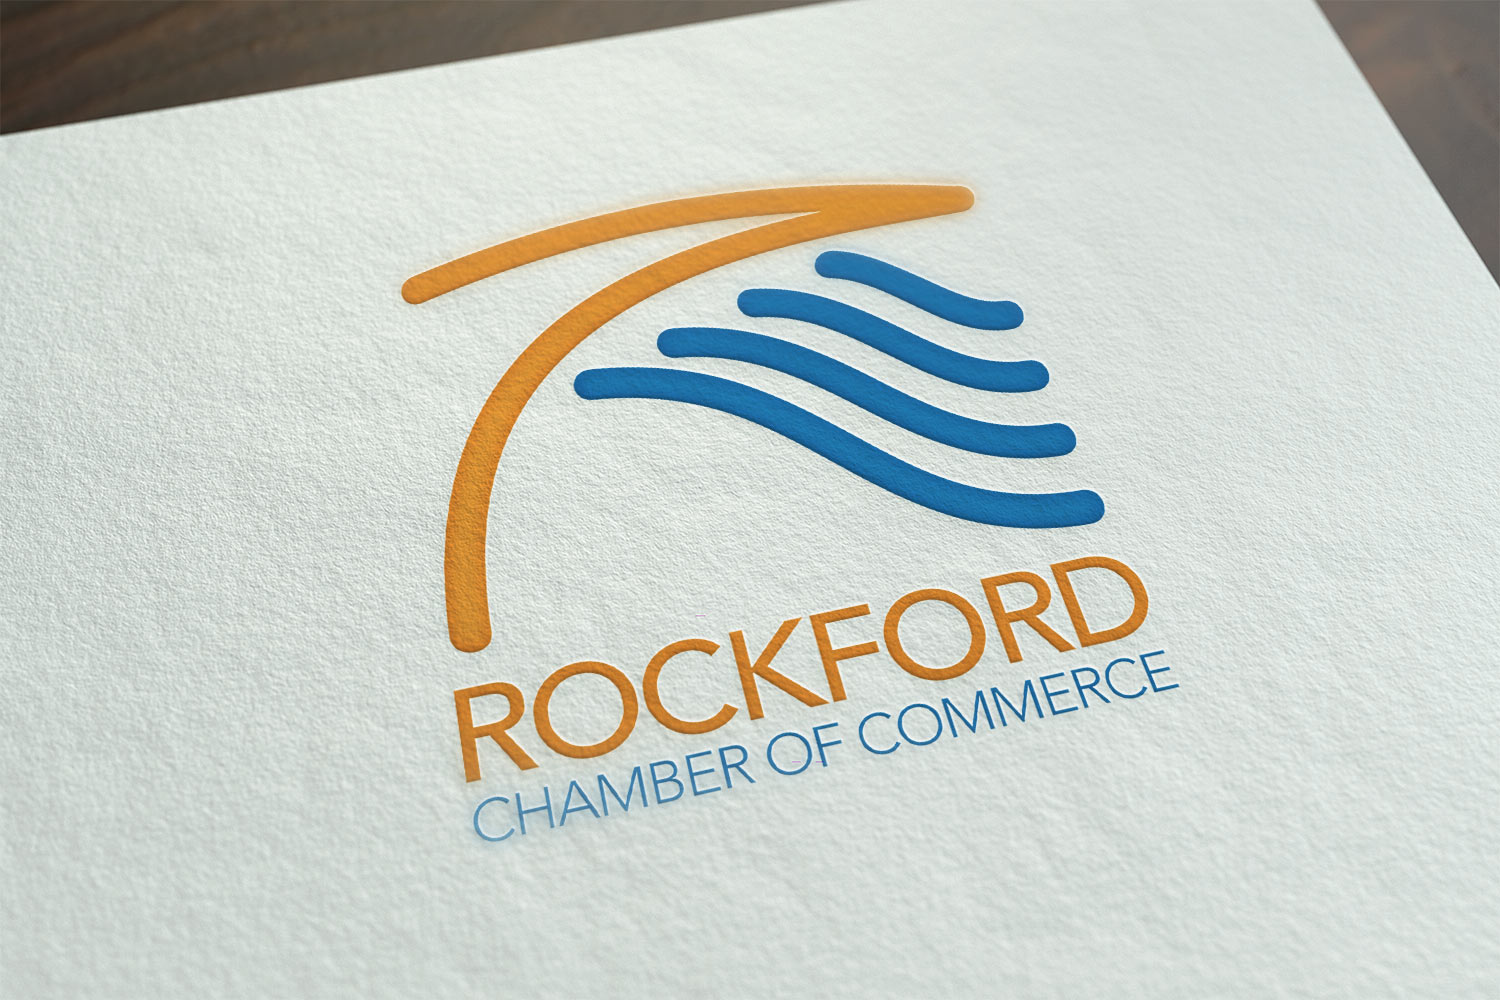 Rockford Chamber of Commerce Logo